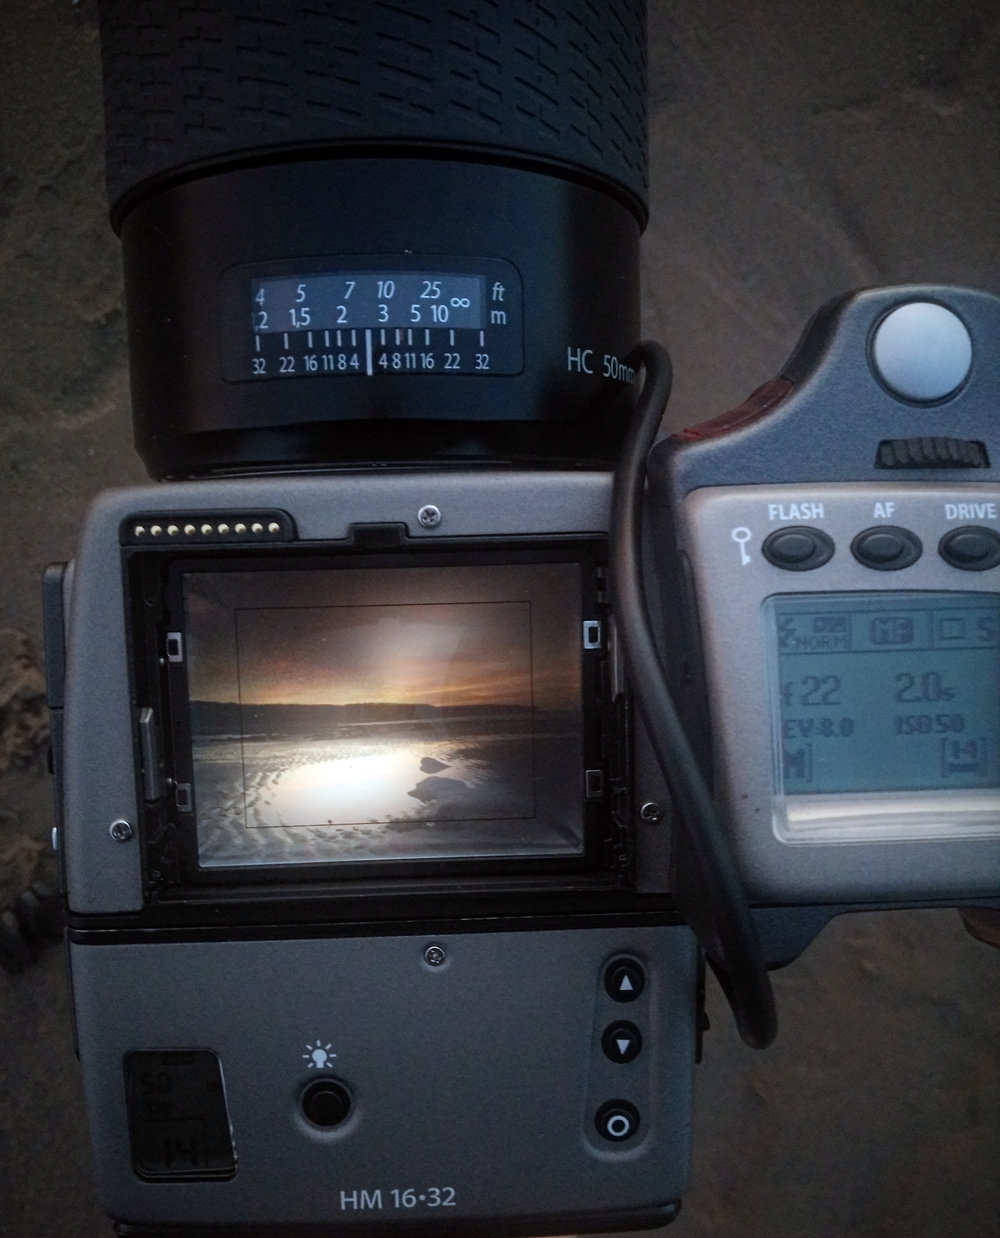 Again with the prism removed, LCD showing shutter speed, aperture and EV